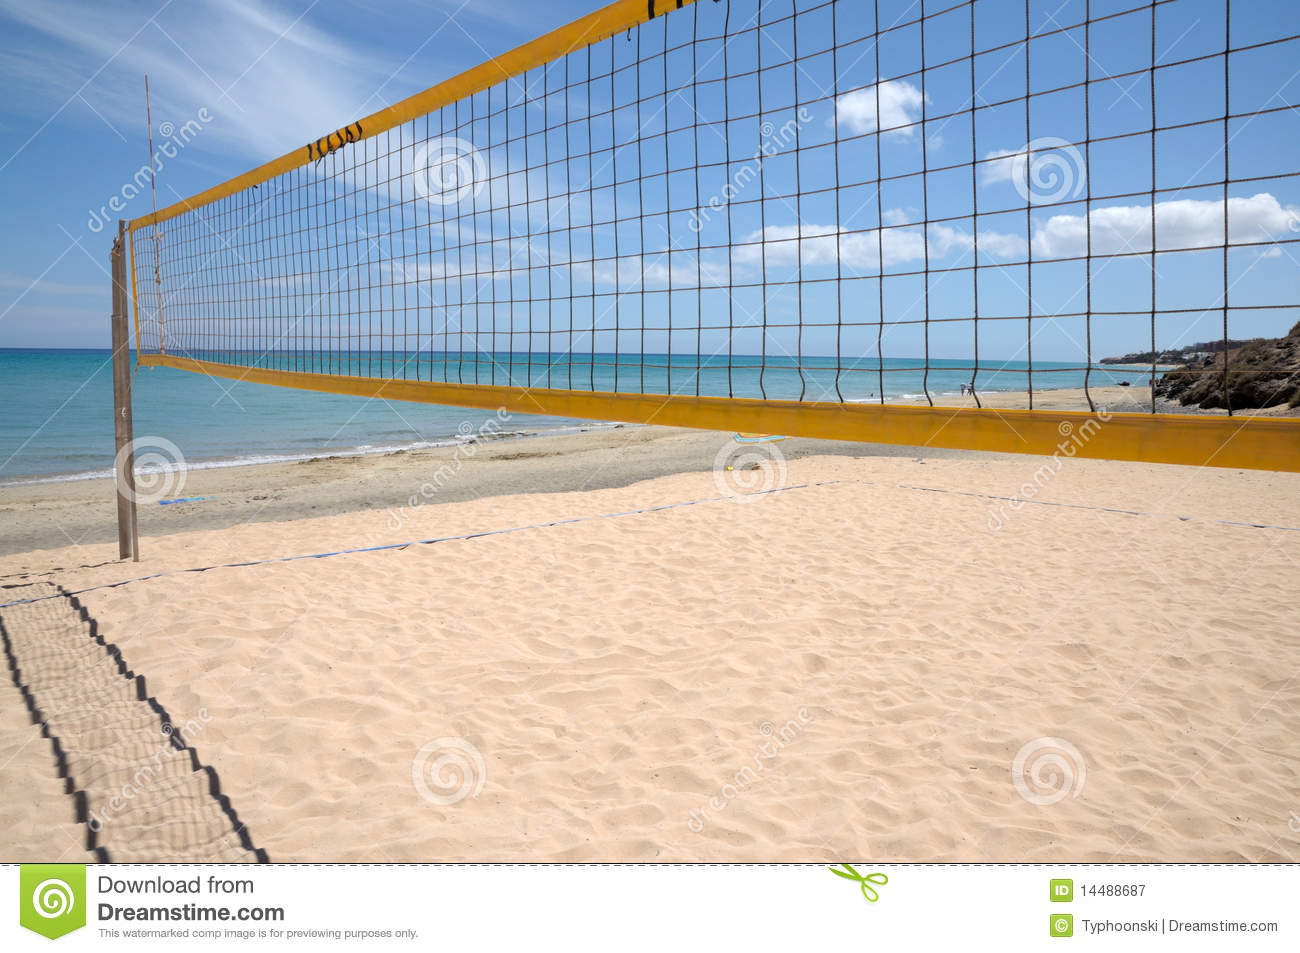 Volleyball Net Royalty Free Stock Photography - Image: 14488687